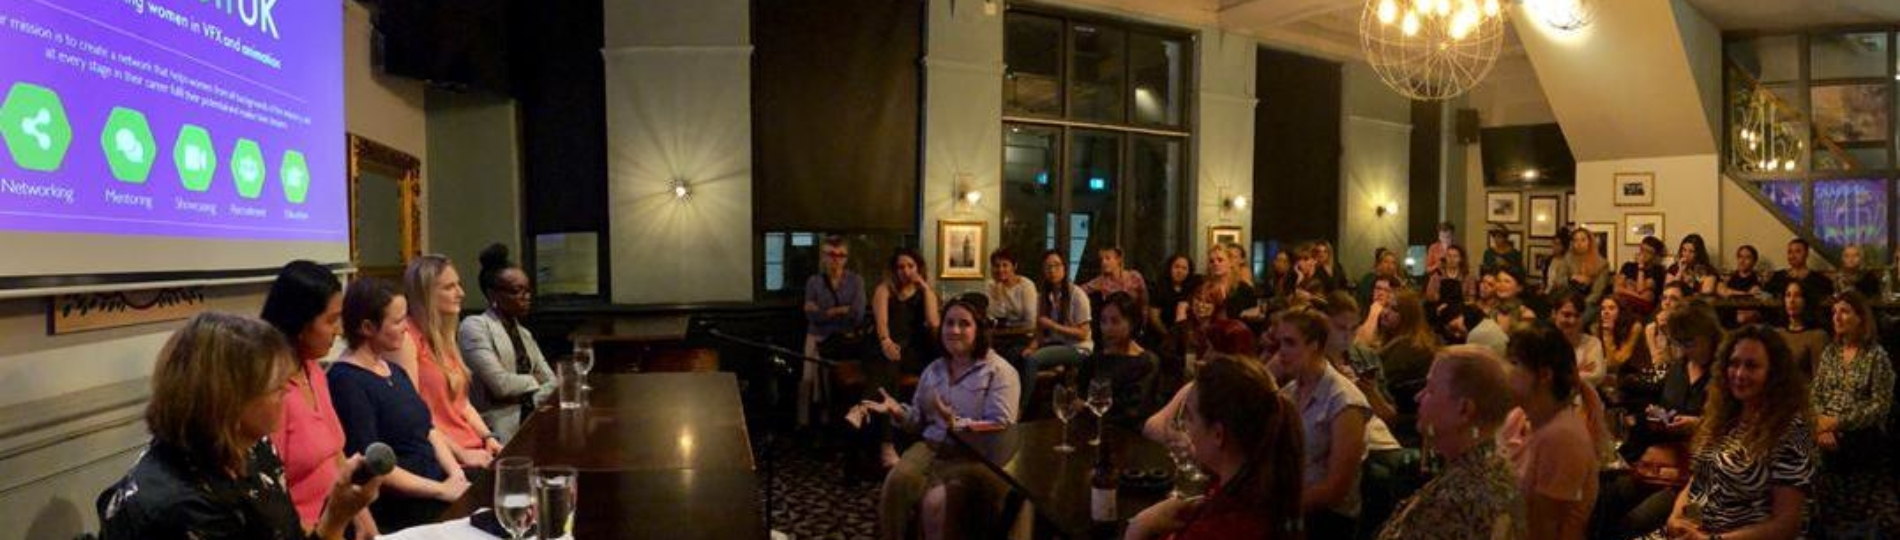 Inspiring insights at the latest Animated Women UK networking event